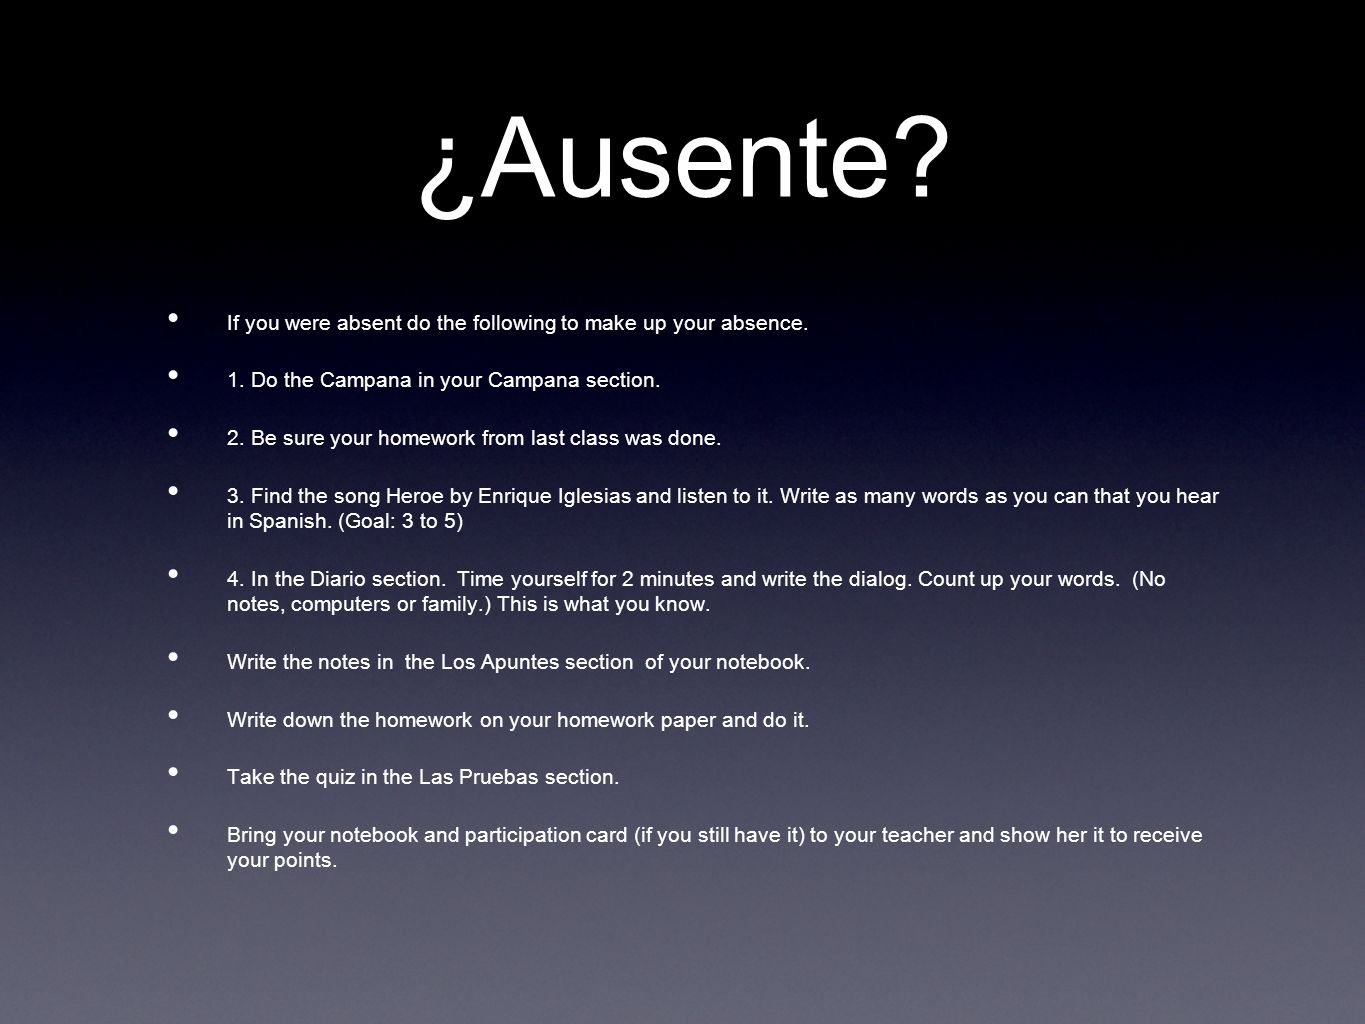 ¿Ausente If you were absent do the following to make up your absence.